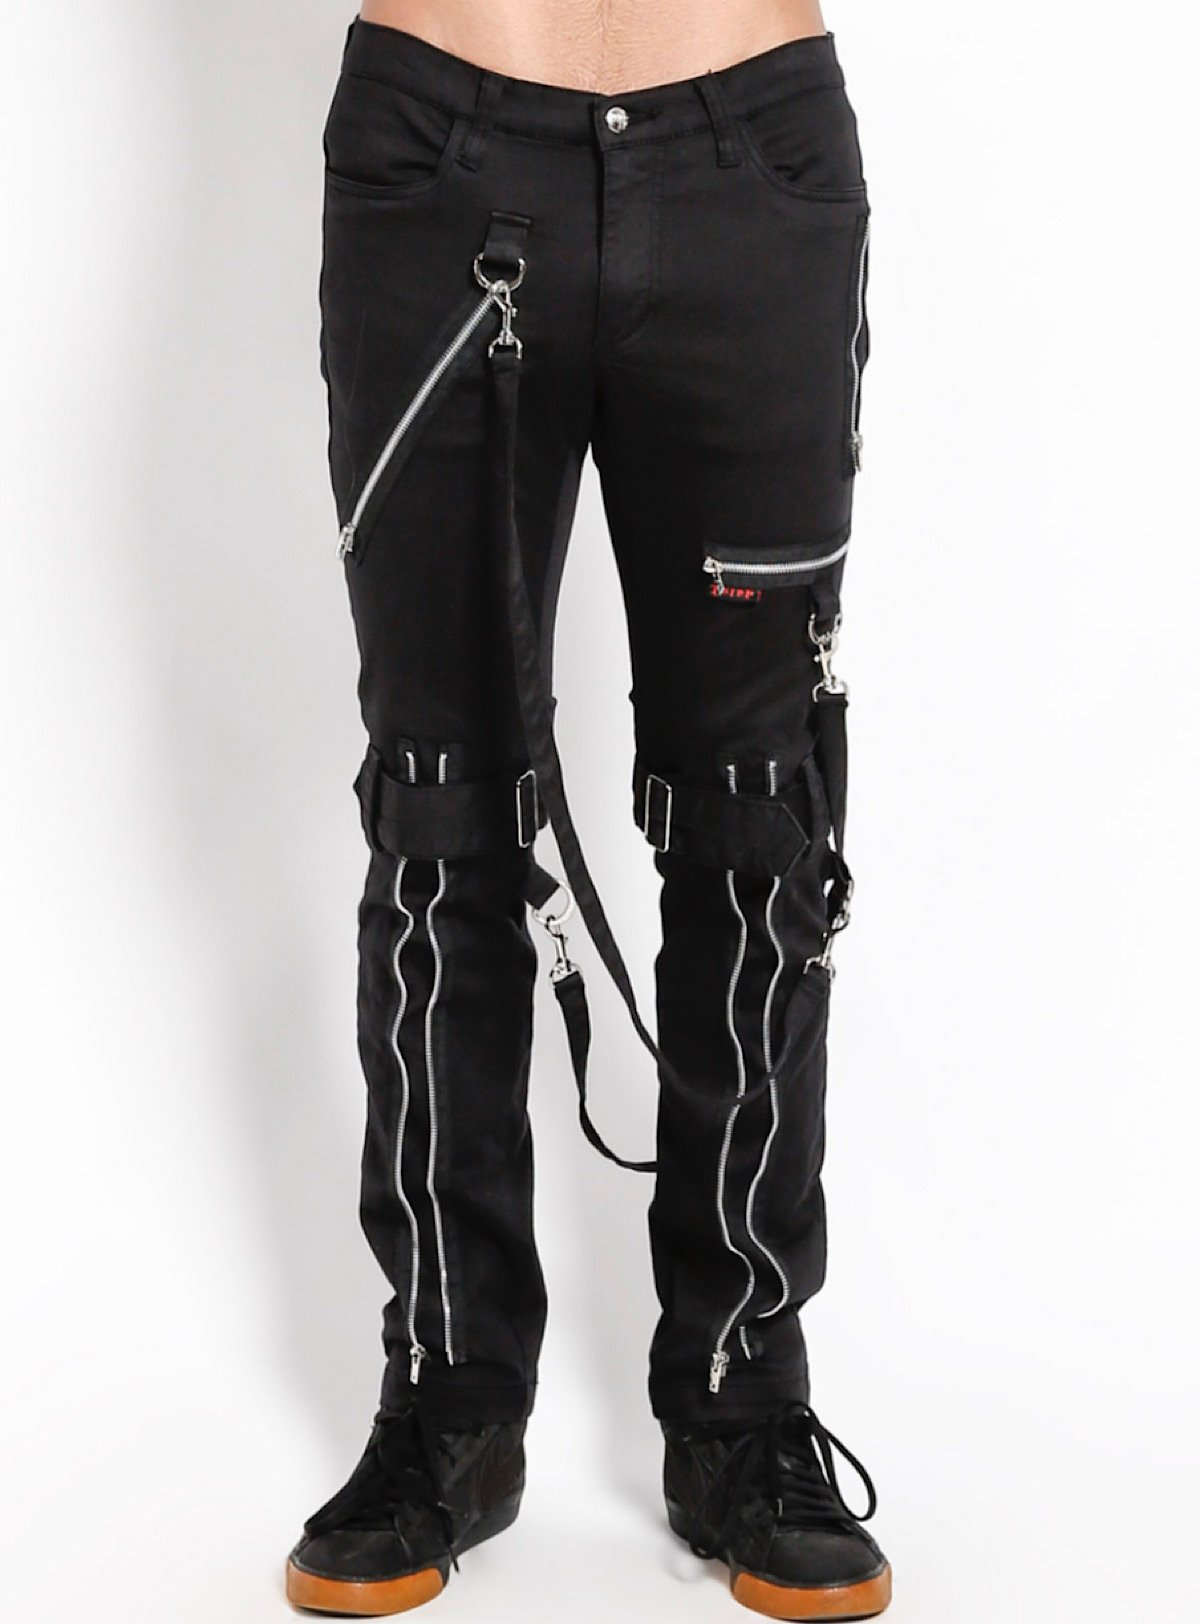 Buyer's Choice Jeans - Bondage - Black - IS267M